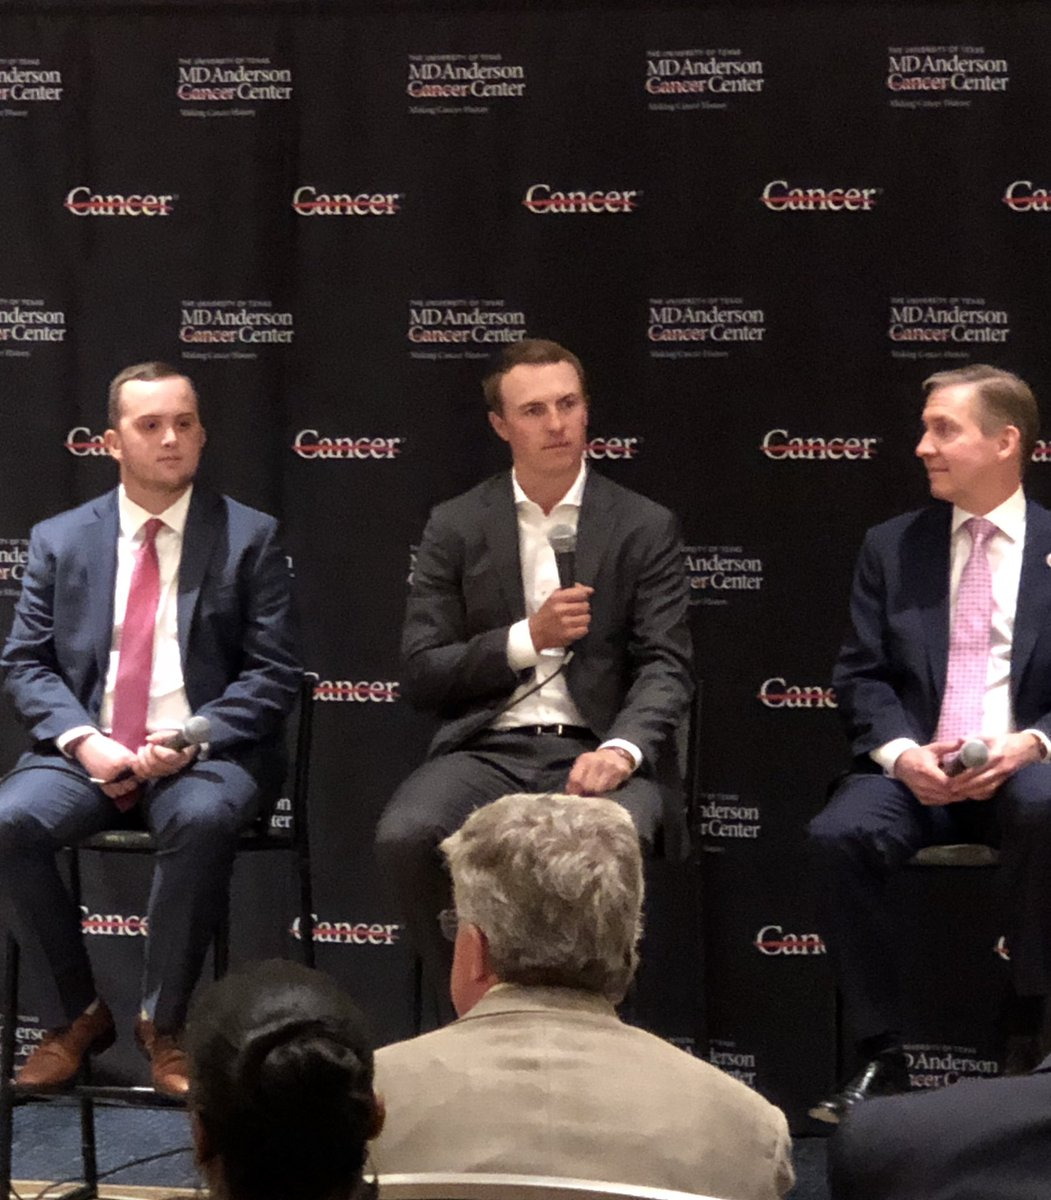 Thank you @JordanSpieth @tonyromo for an amazing Conversation with a Living Legend @CityOfDallas event, raising a record breaking $1.3 million for @MDAndersonNews to #endcancer @PGATOUR @ppisters @ssherburn @audreytrevino @MarkRolfingGC